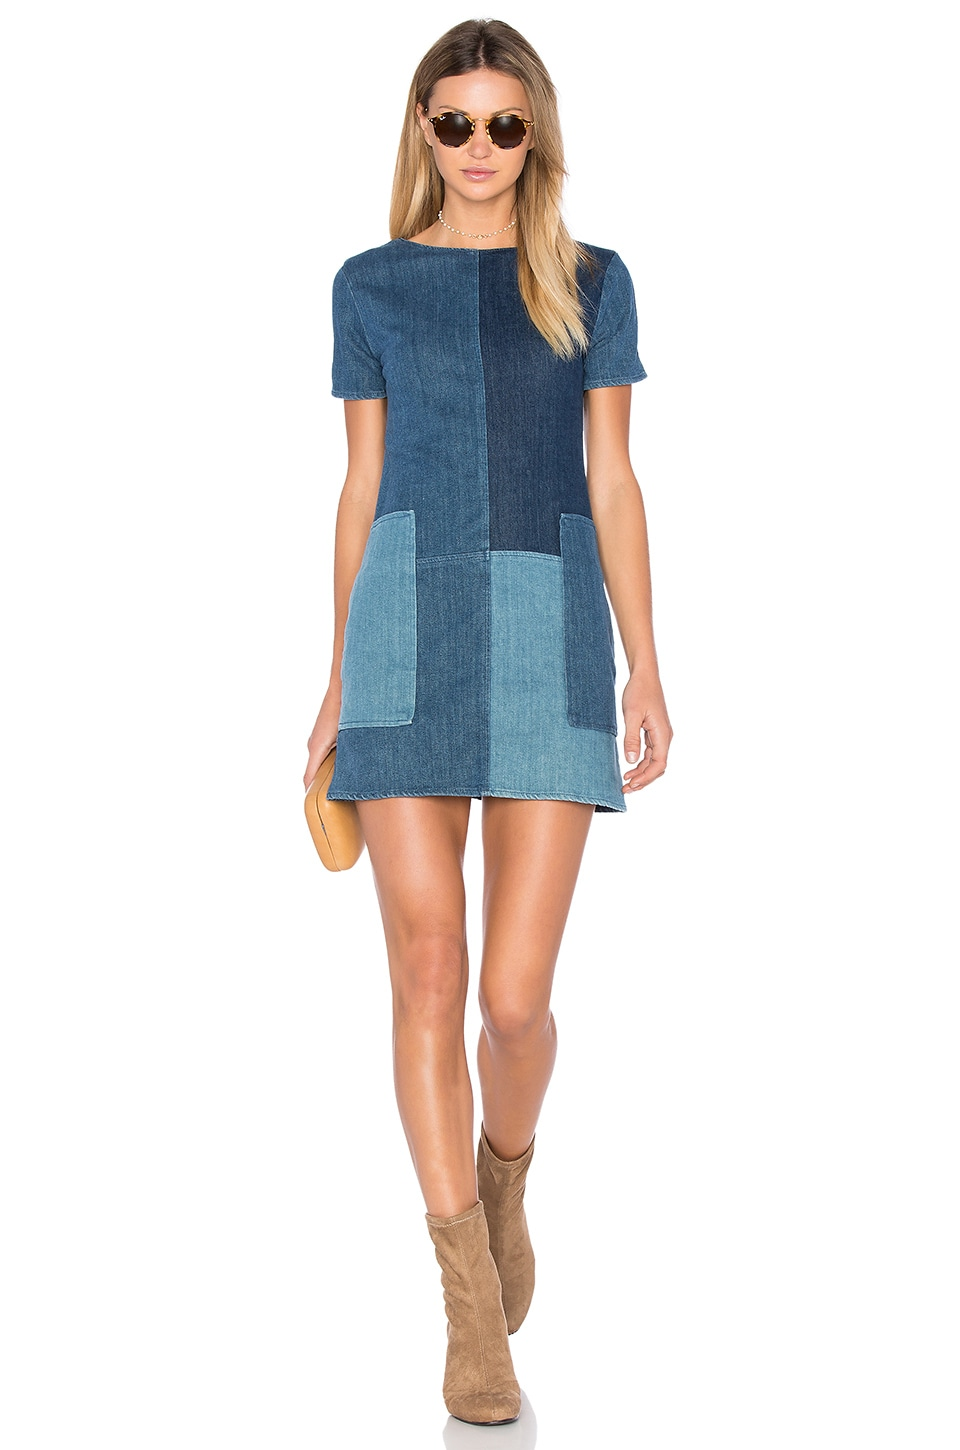 J Brand Luna Shift Dress in Rosemary Mix